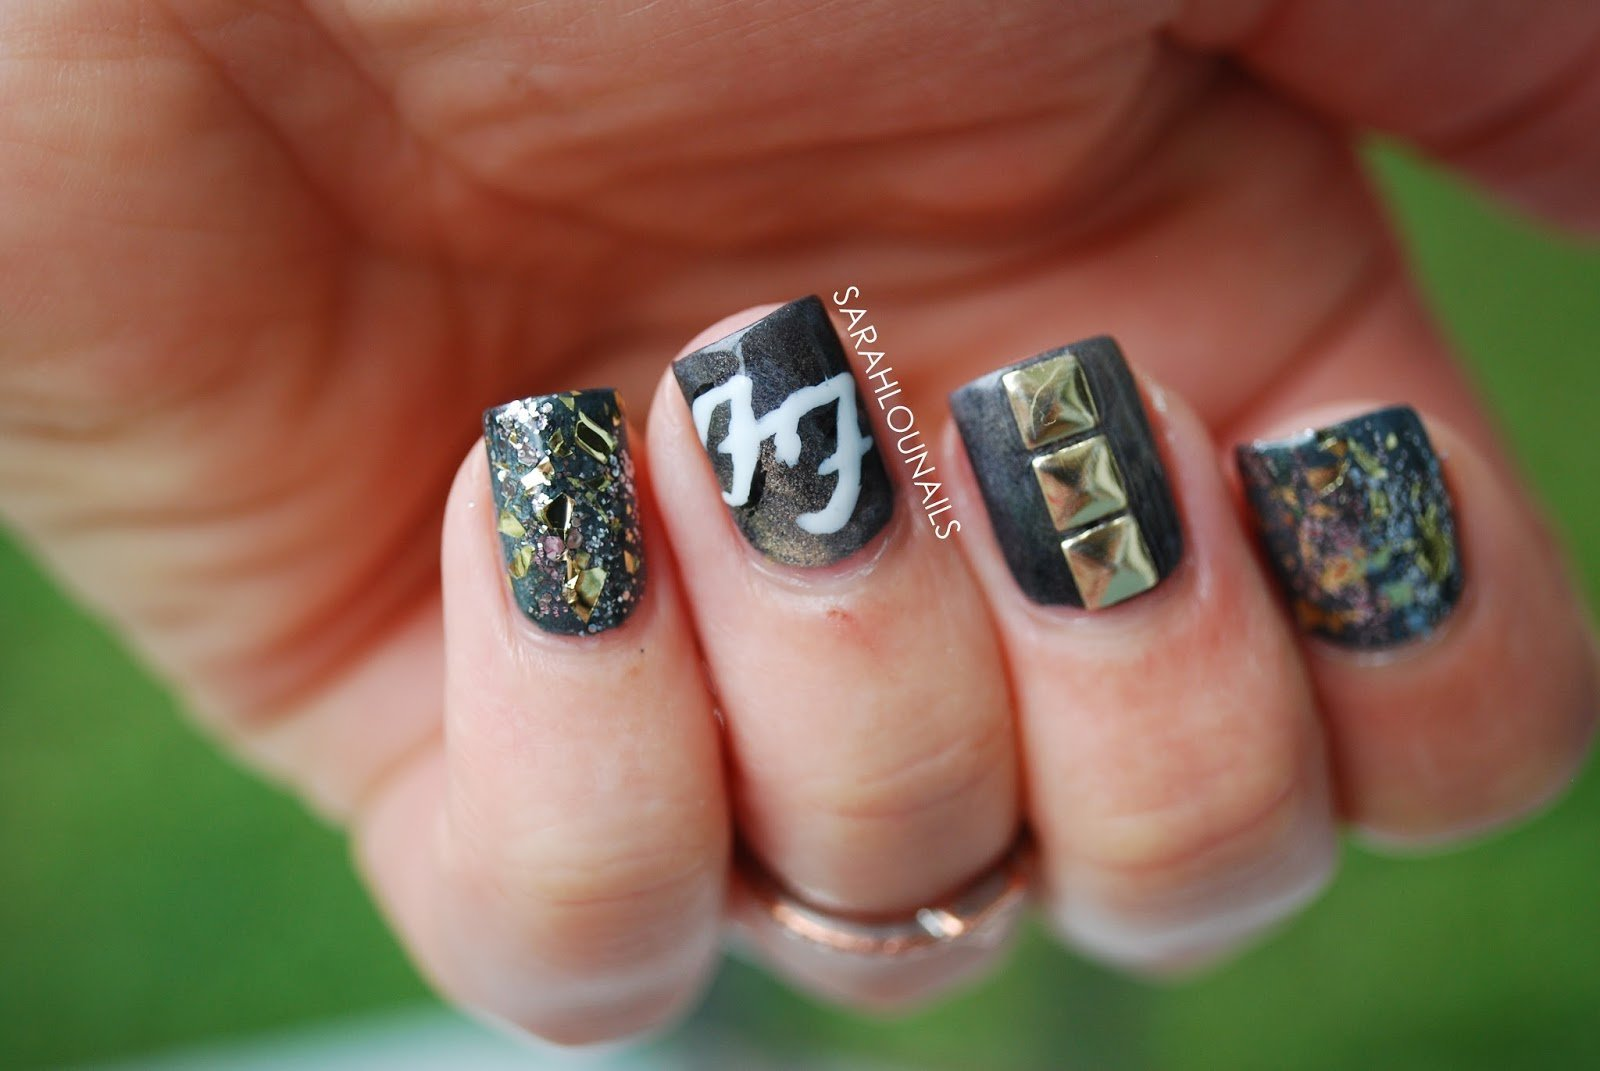 Foo Fighter's Nails 5 copy-1